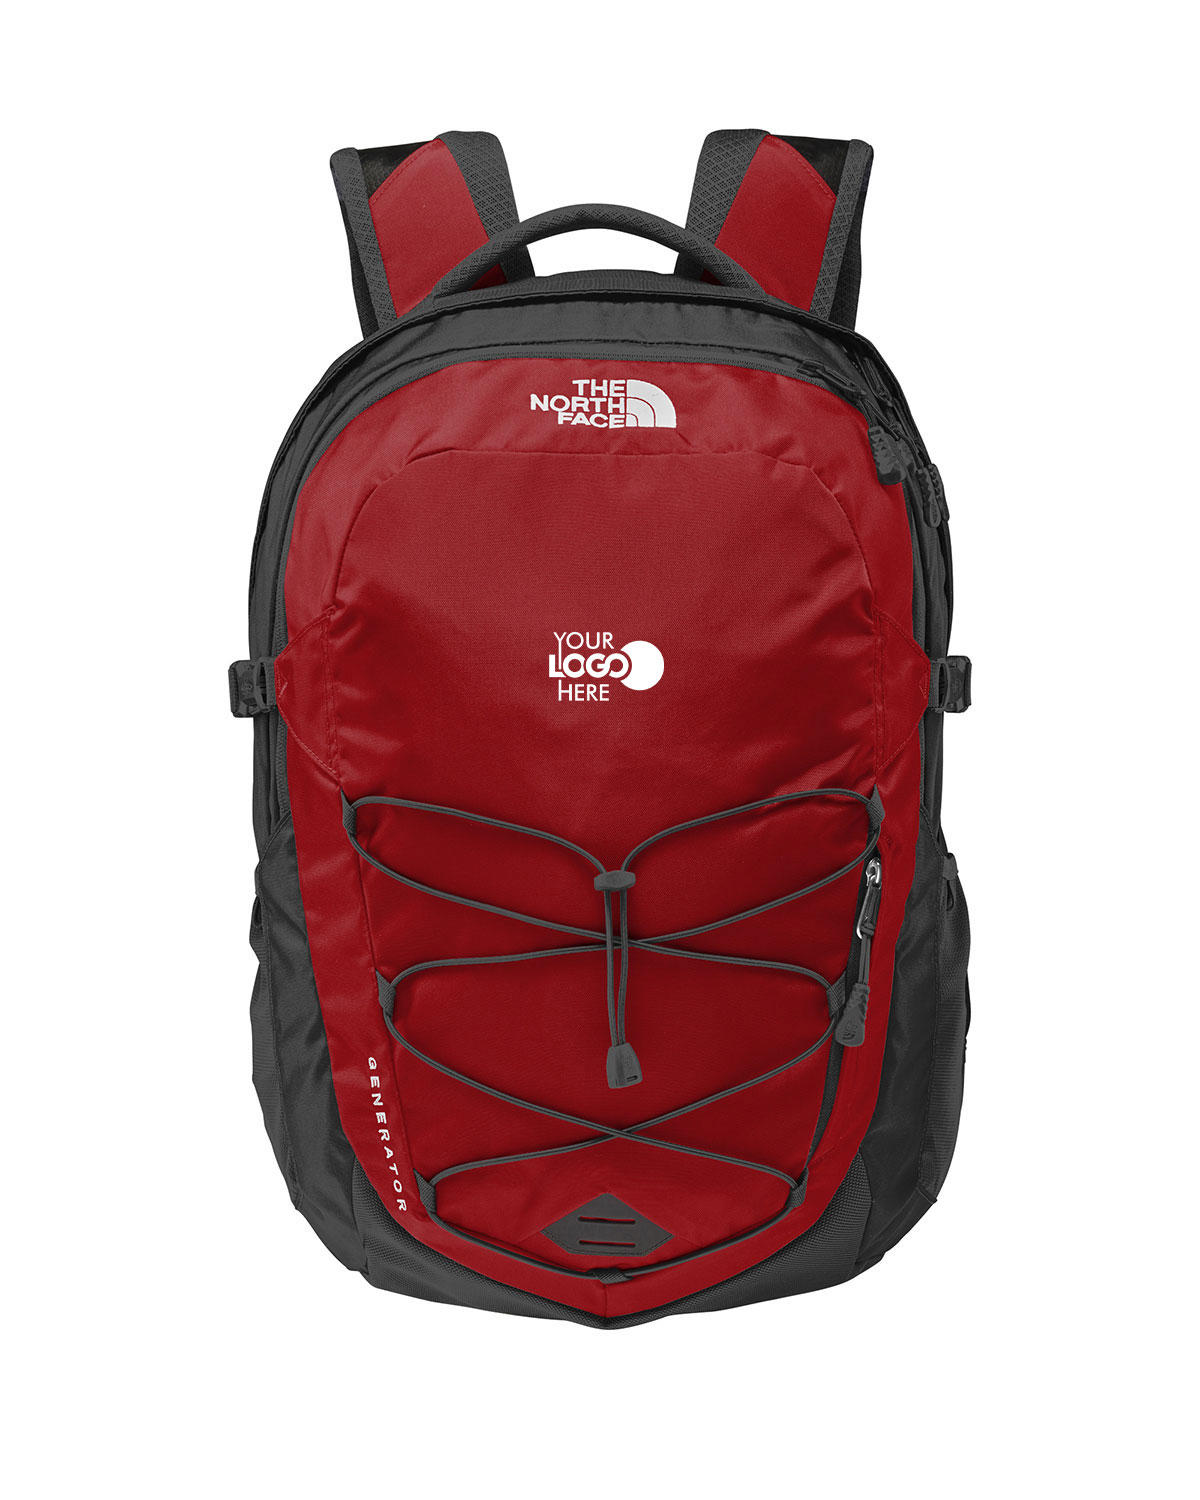 The North Face NF0A3KX5 Generator Backpack